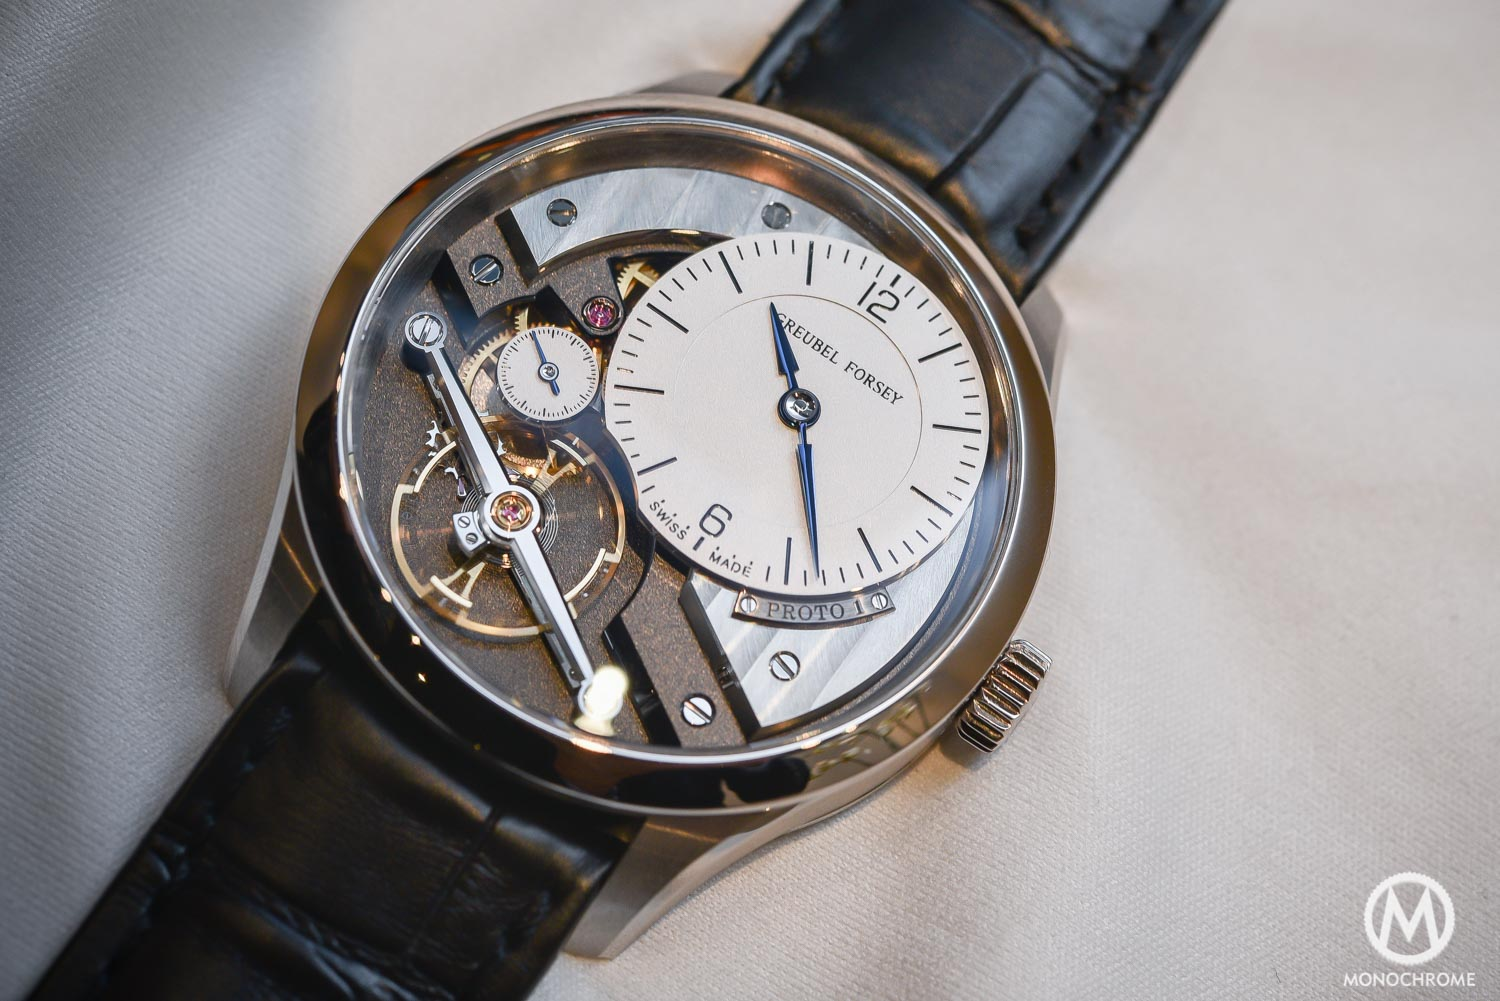 Greubel Forsey Signature 1 - Stainless steel entry level - SIHH 2016 - dial